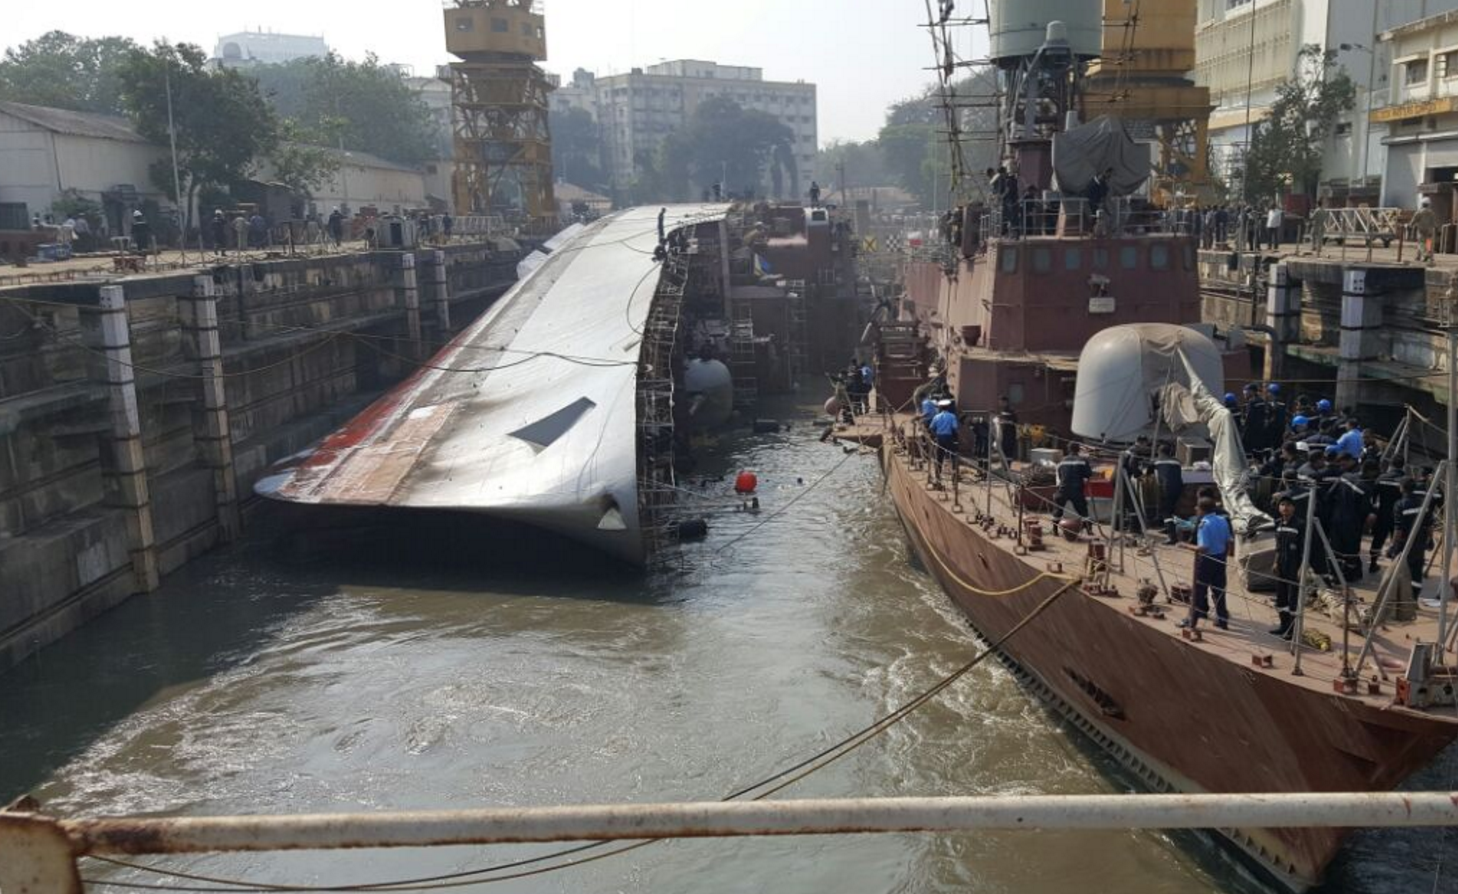 INS Betwa after the accident in Mumbai's naval dockyard